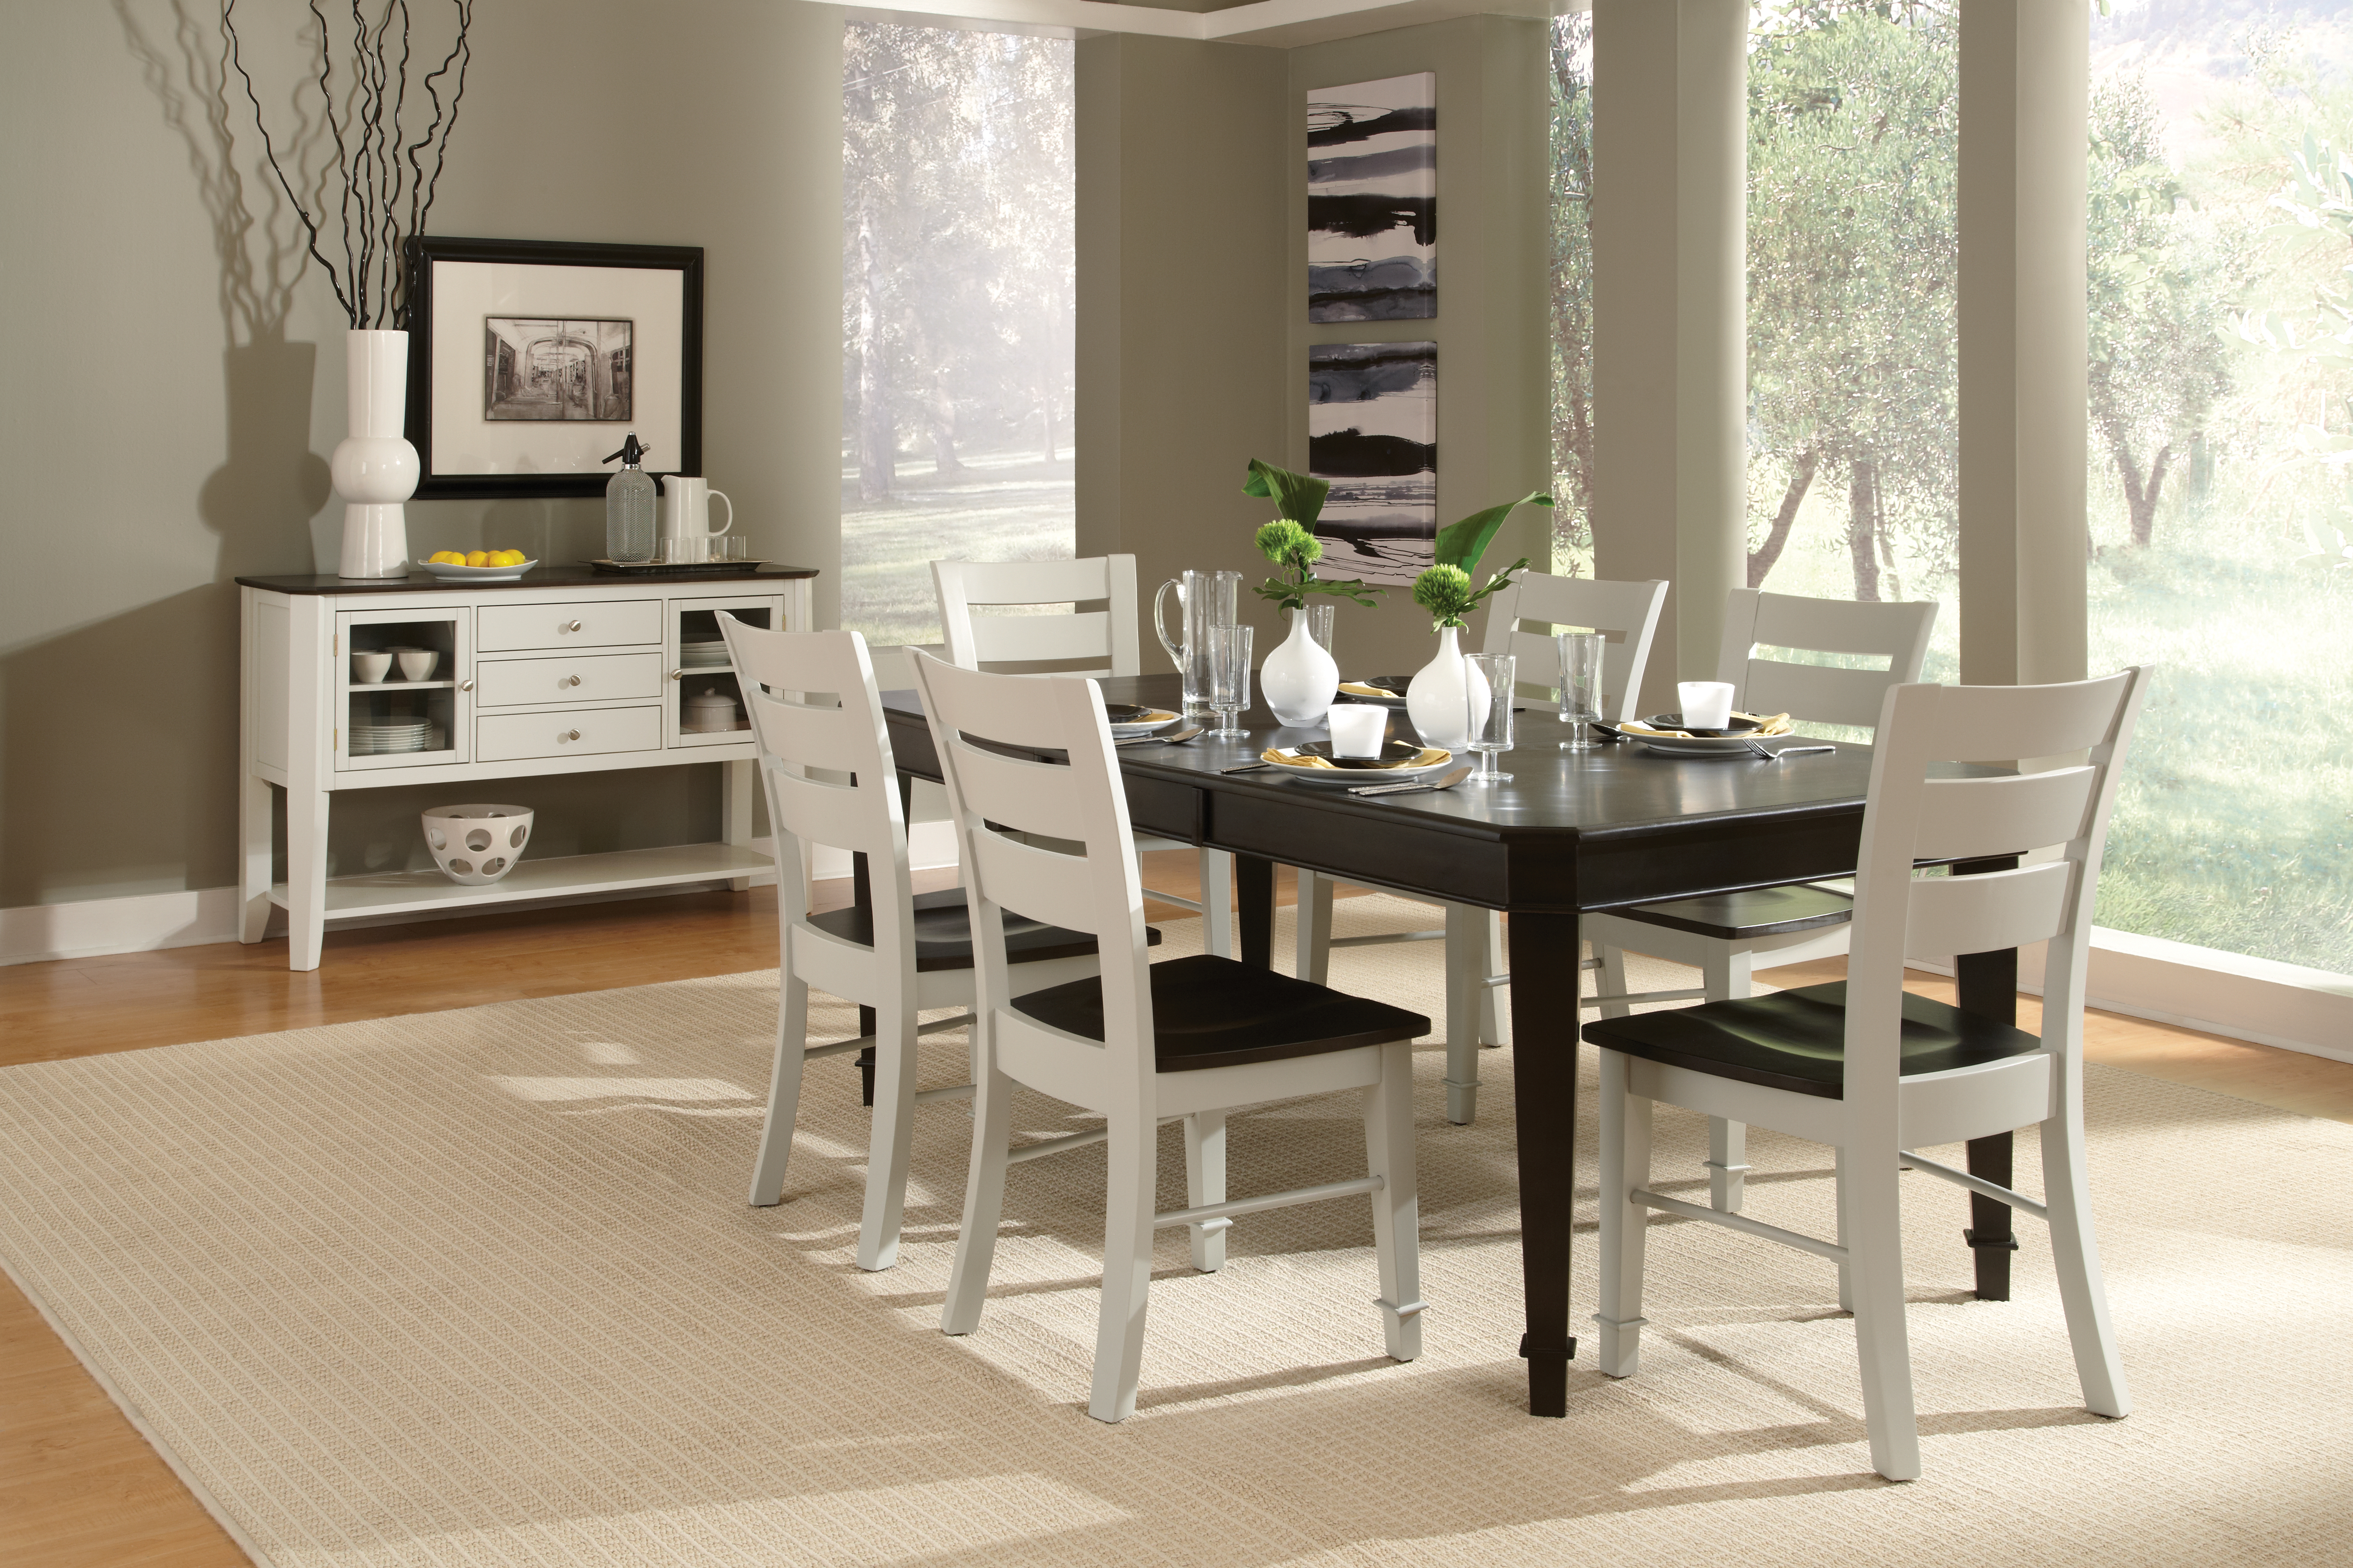 Table and Chair Sale Kitchen and Dining Room Furniture